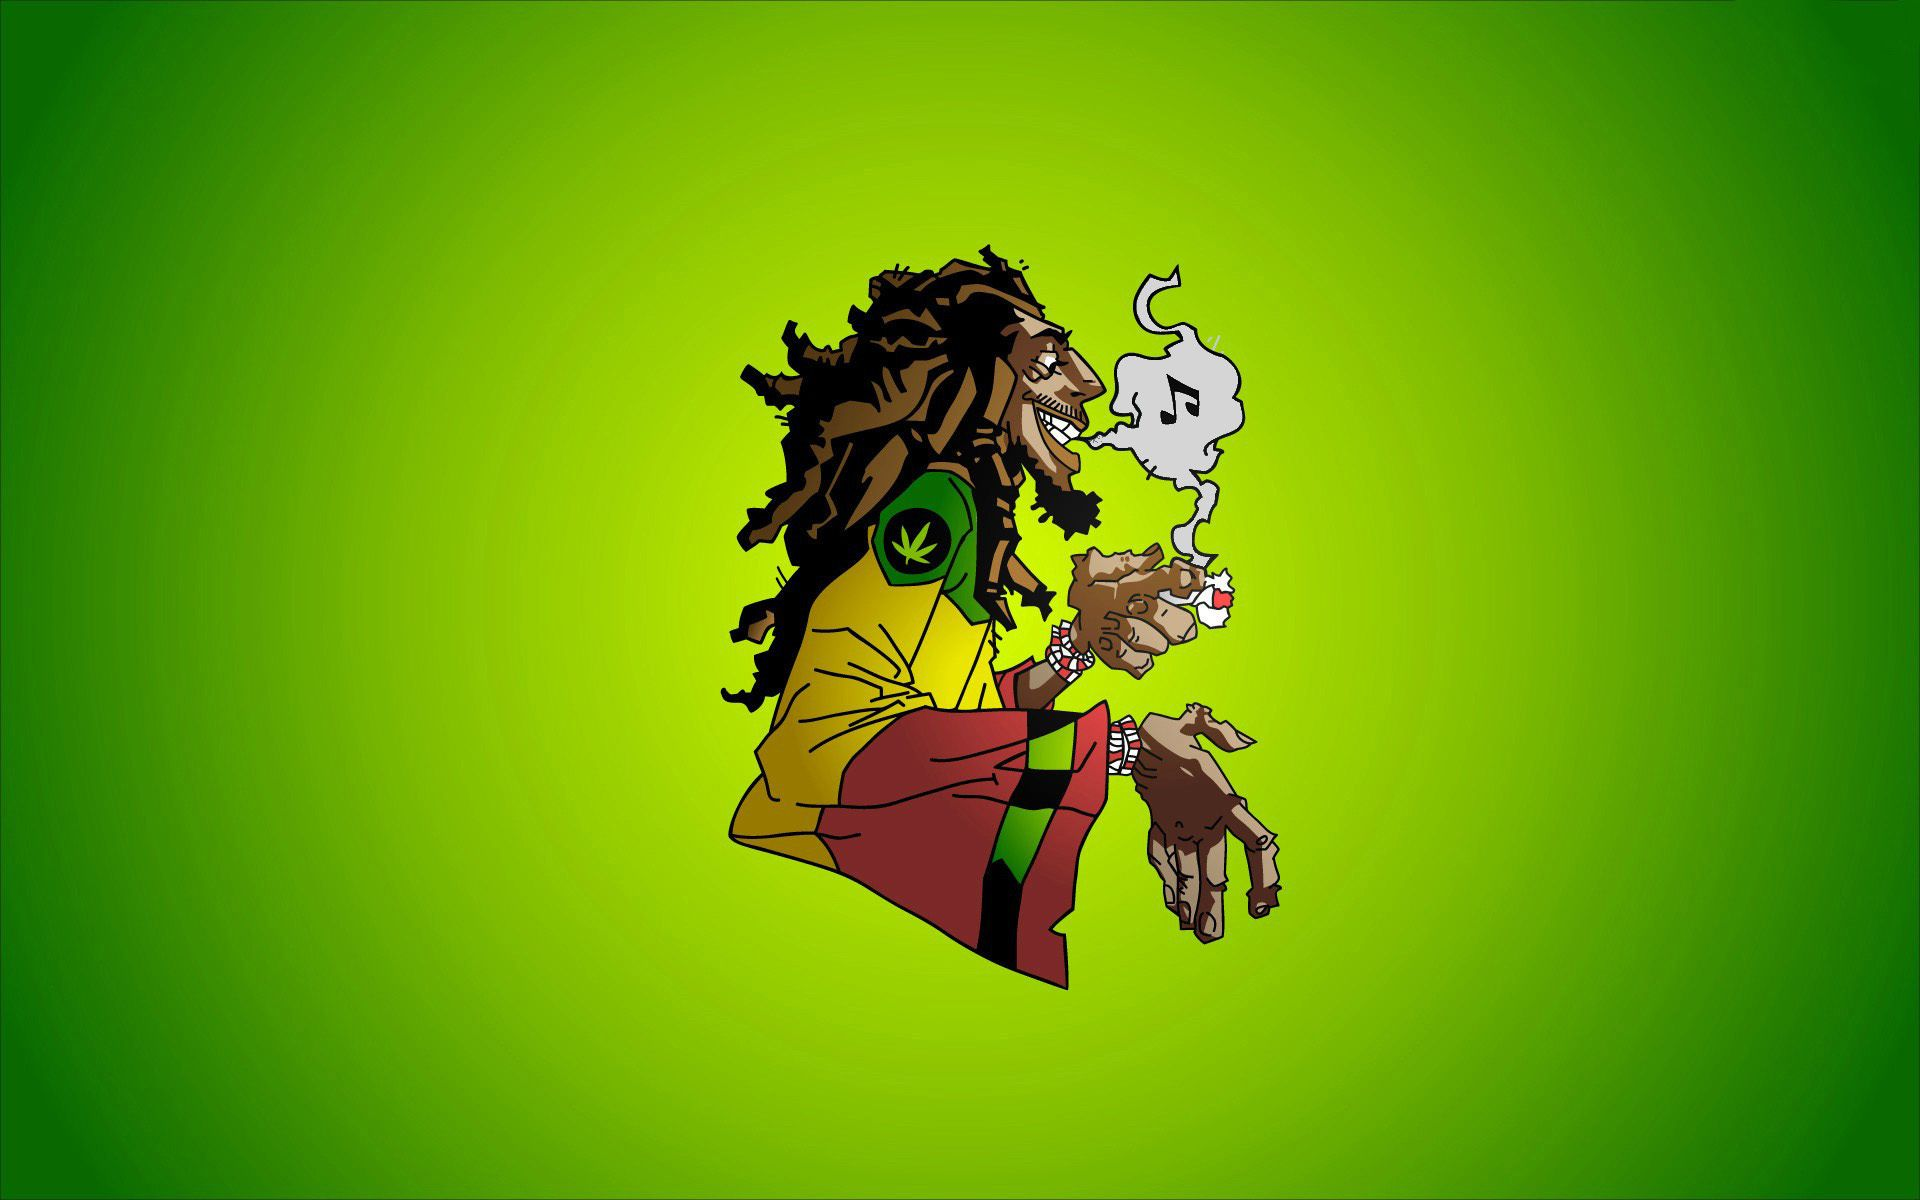 Smoking Weed Wallpapers Top Free Smoking Weed Backgrounds